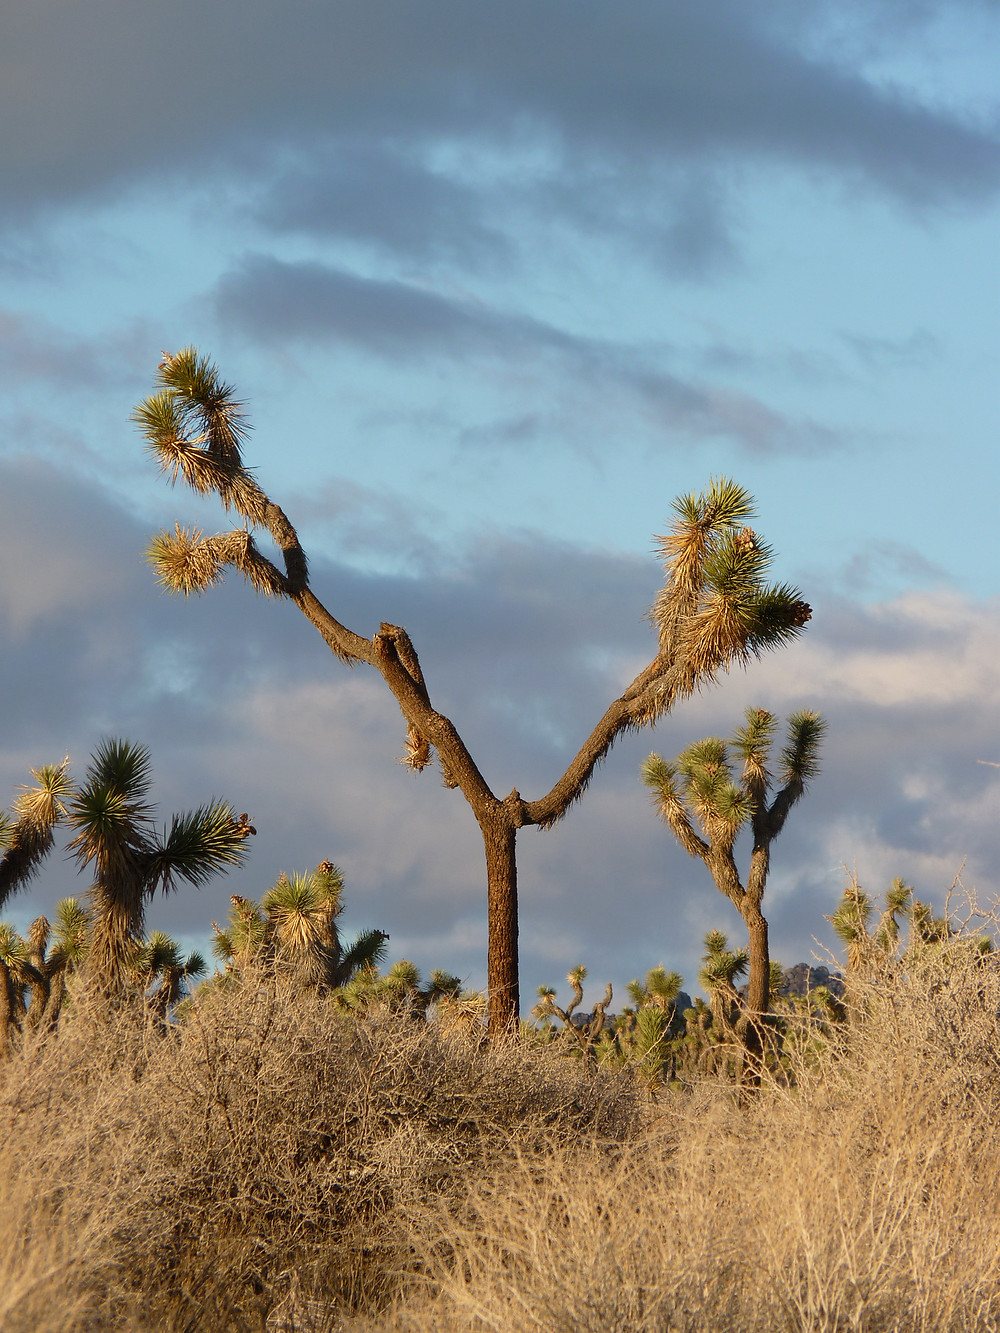 The endangered western Joshua tree in Joshua Tree National Park.